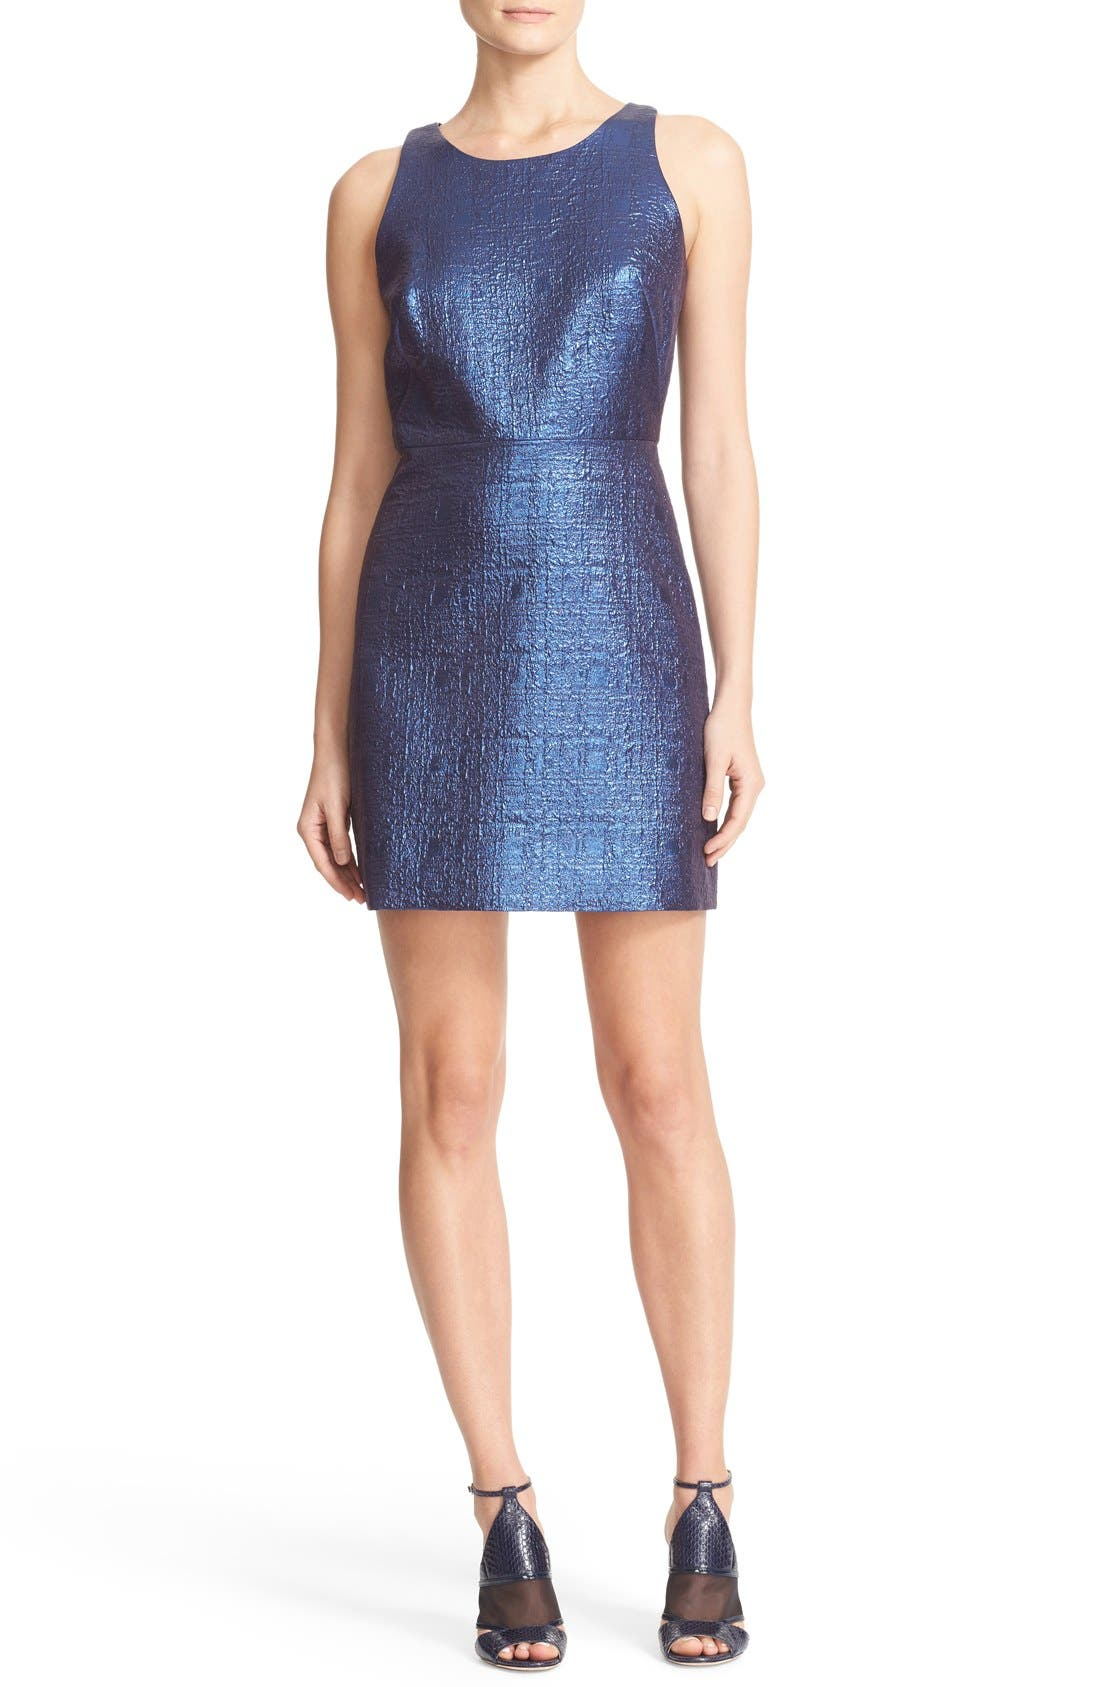 Alternate Image 1 Selected - Milly Metallic Jacquard A-Line Dress